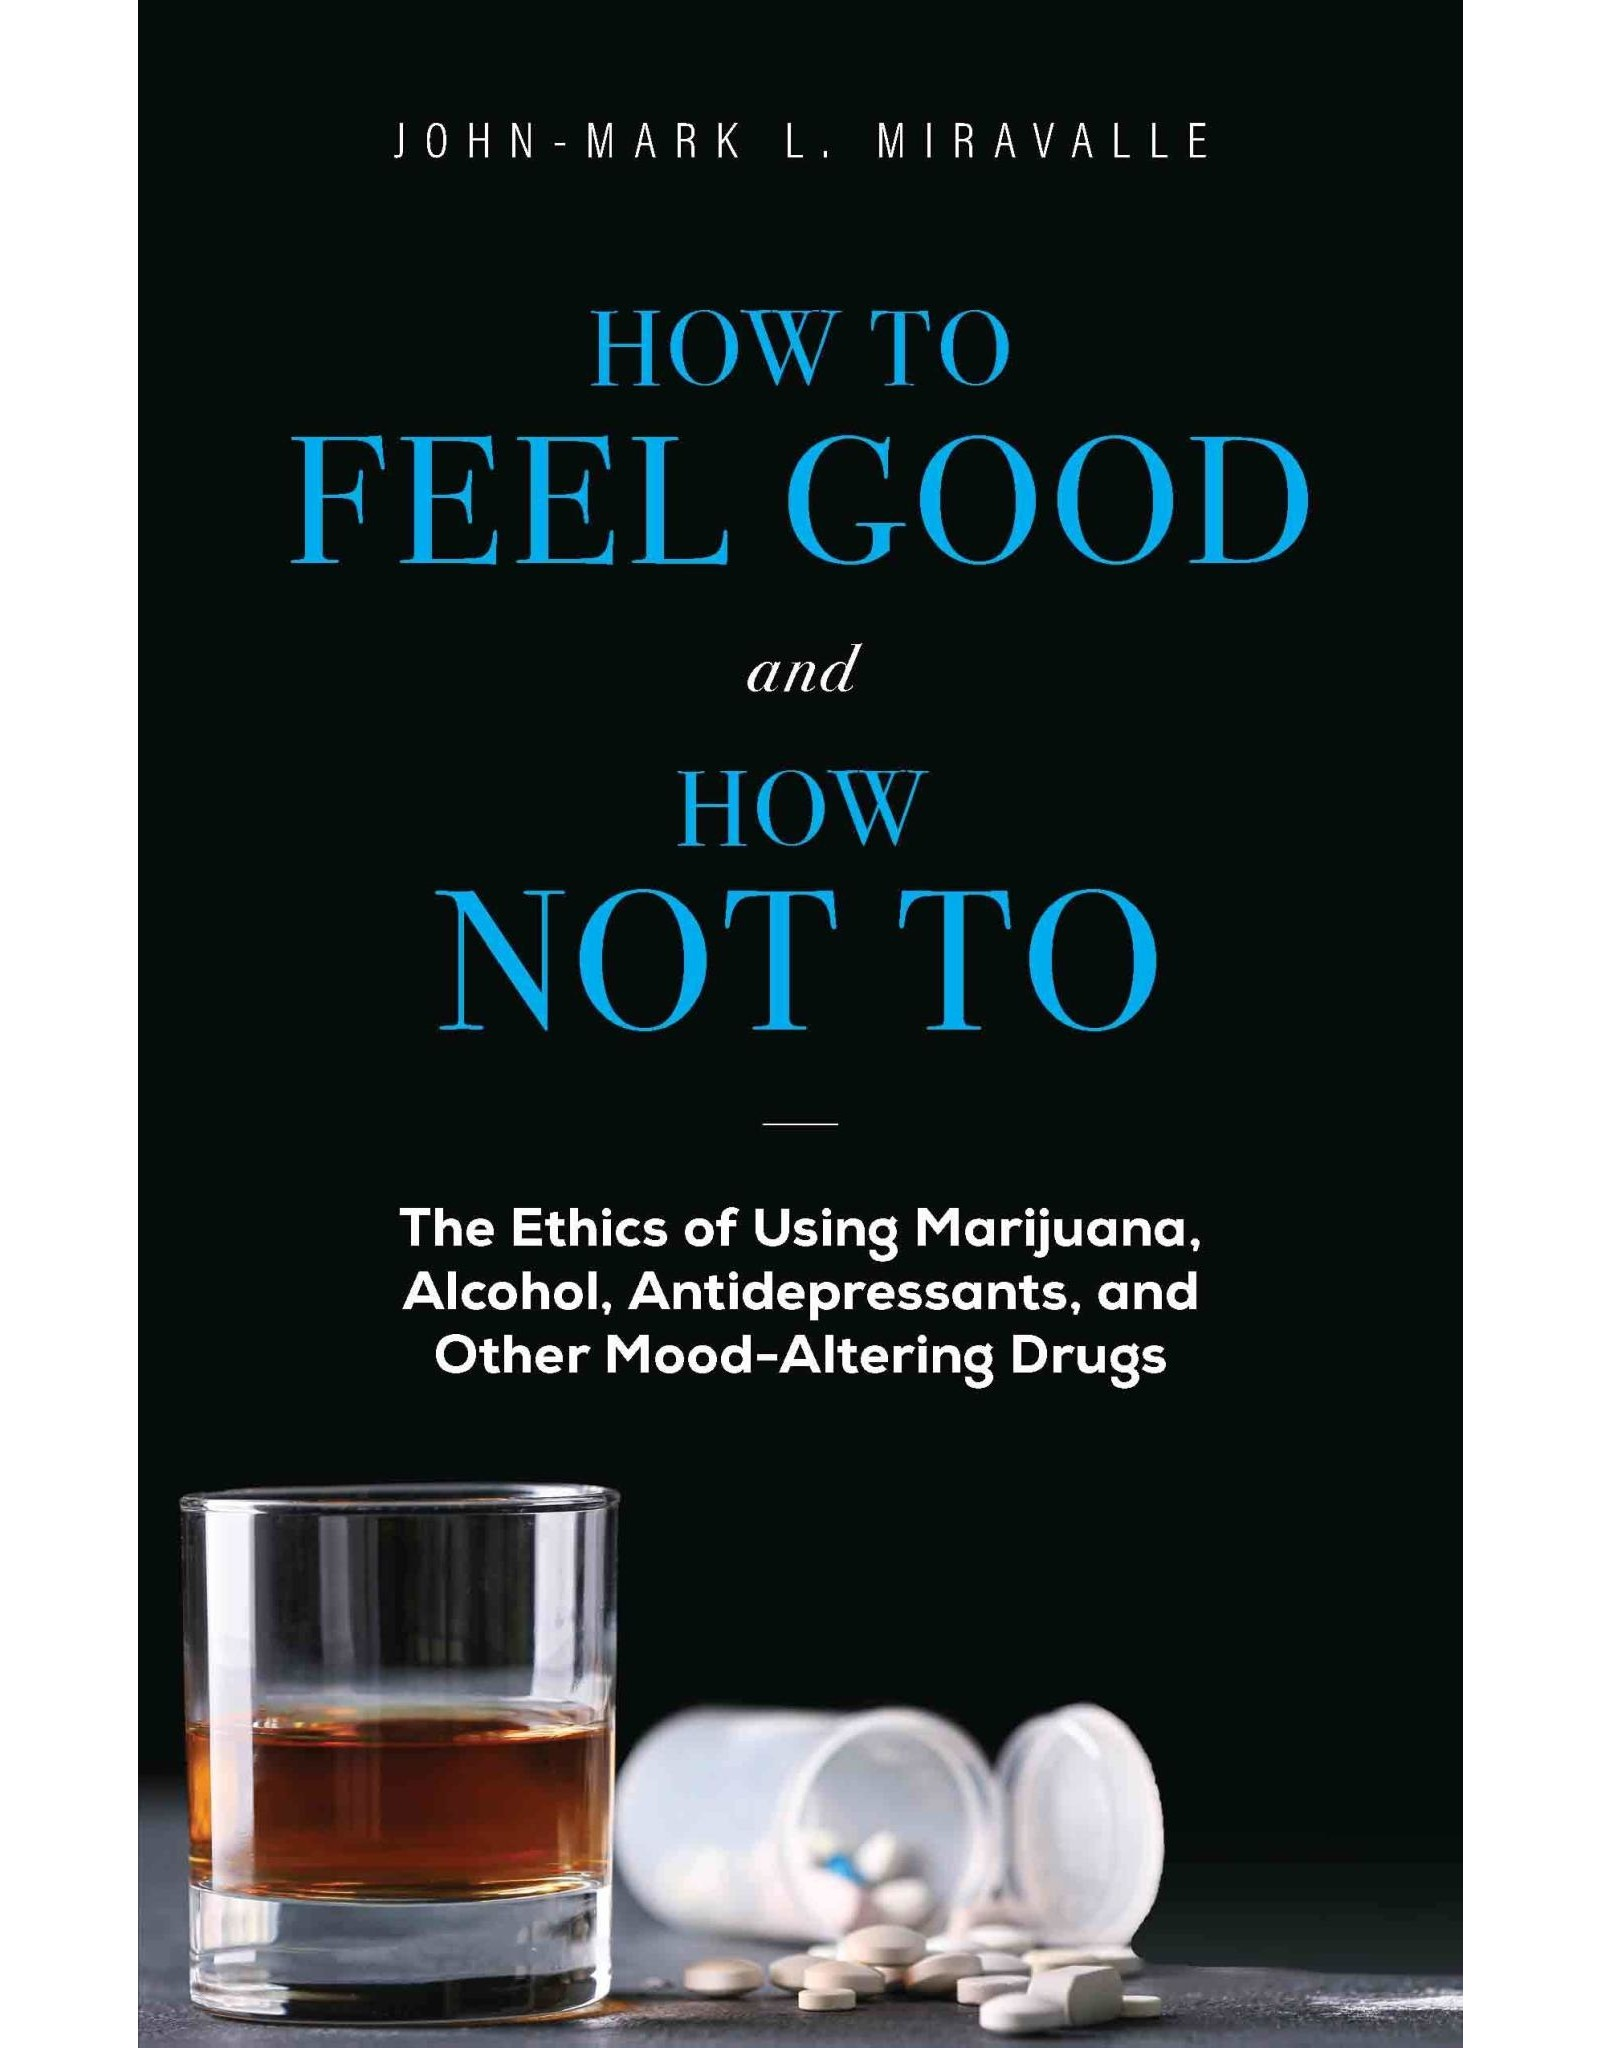 How to Feel Good and How Not to: The Ethics of Using Marijuana, Alcohol, Antidepressants, & Other Mood-Altering Drugs